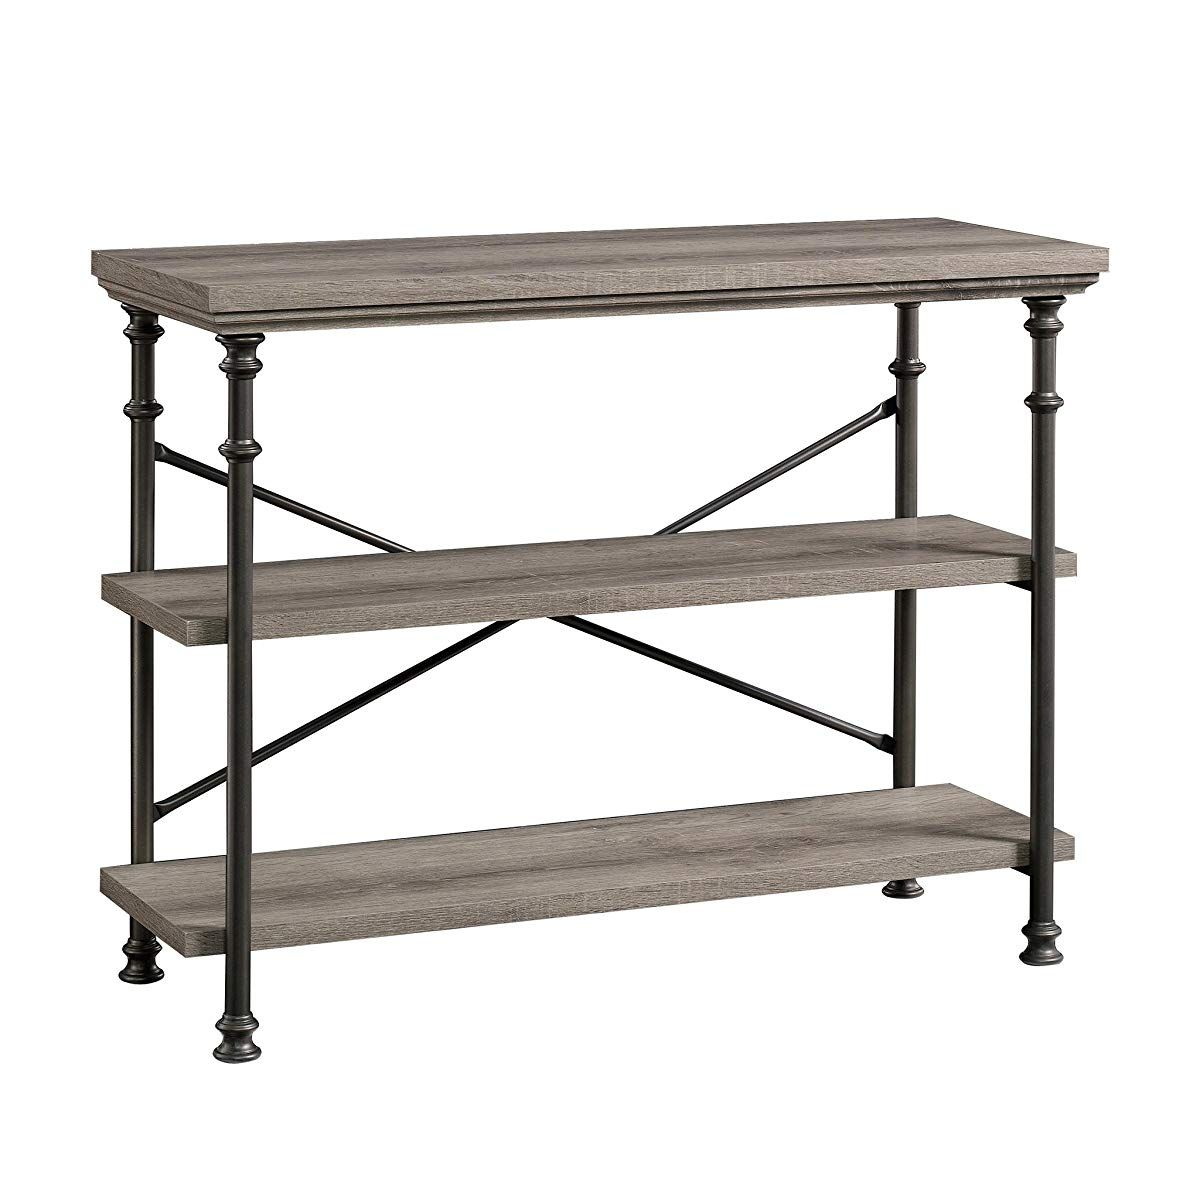 Fantastic furniture hallway table  Console Table Northern Oak  Wrought Iron Console Table in